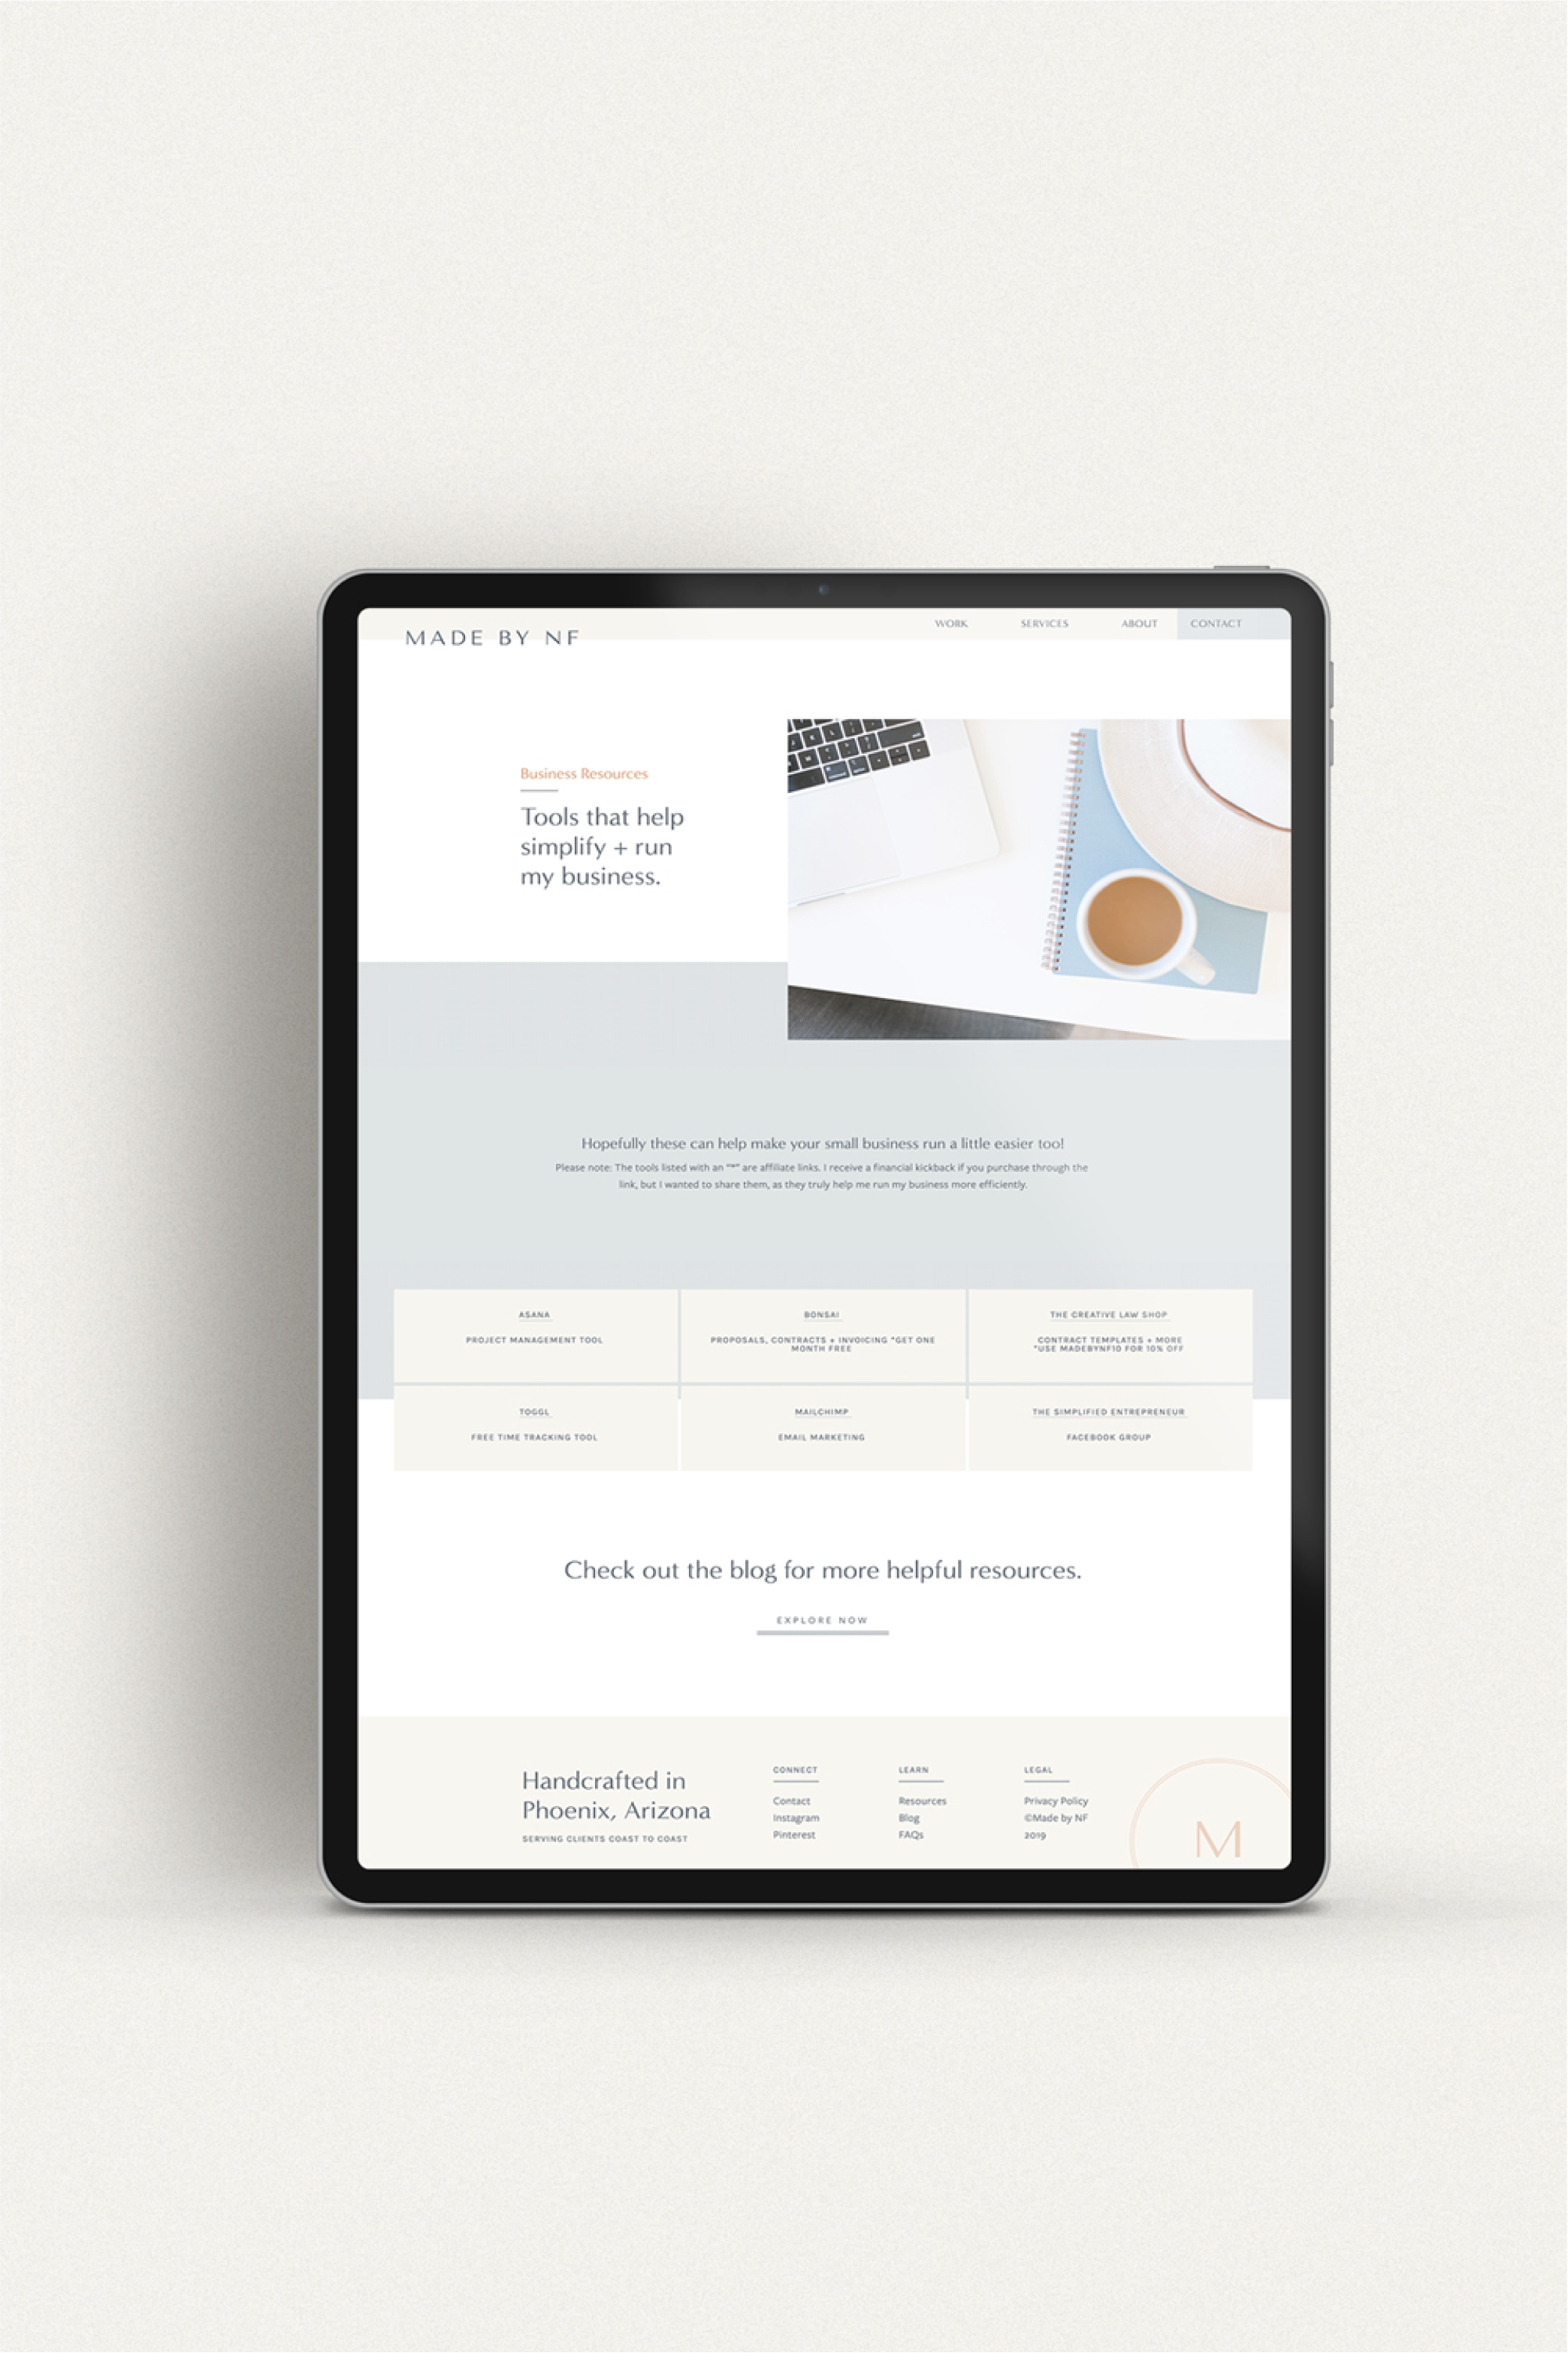 Light Simple And Purposeful Squarespace Website Design Customized Details Give This Squarespace Squarespace Website Design Squarespace Website Website Design